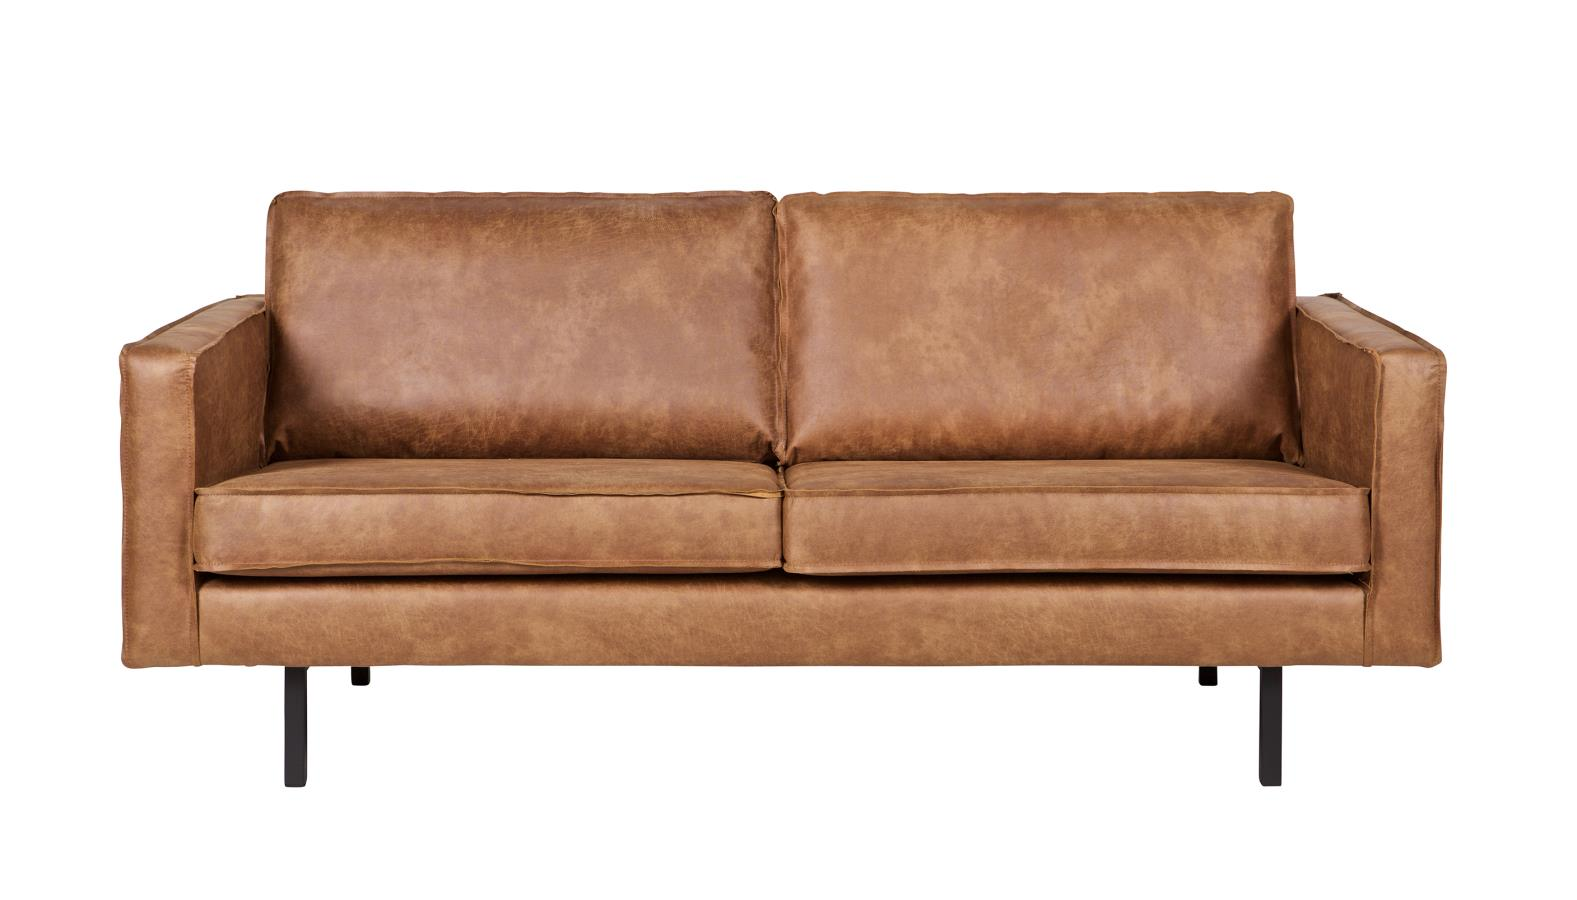 ledersofa rodeo 2 sitzer cognac m bel sessel sofas. Black Bedroom Furniture Sets. Home Design Ideas